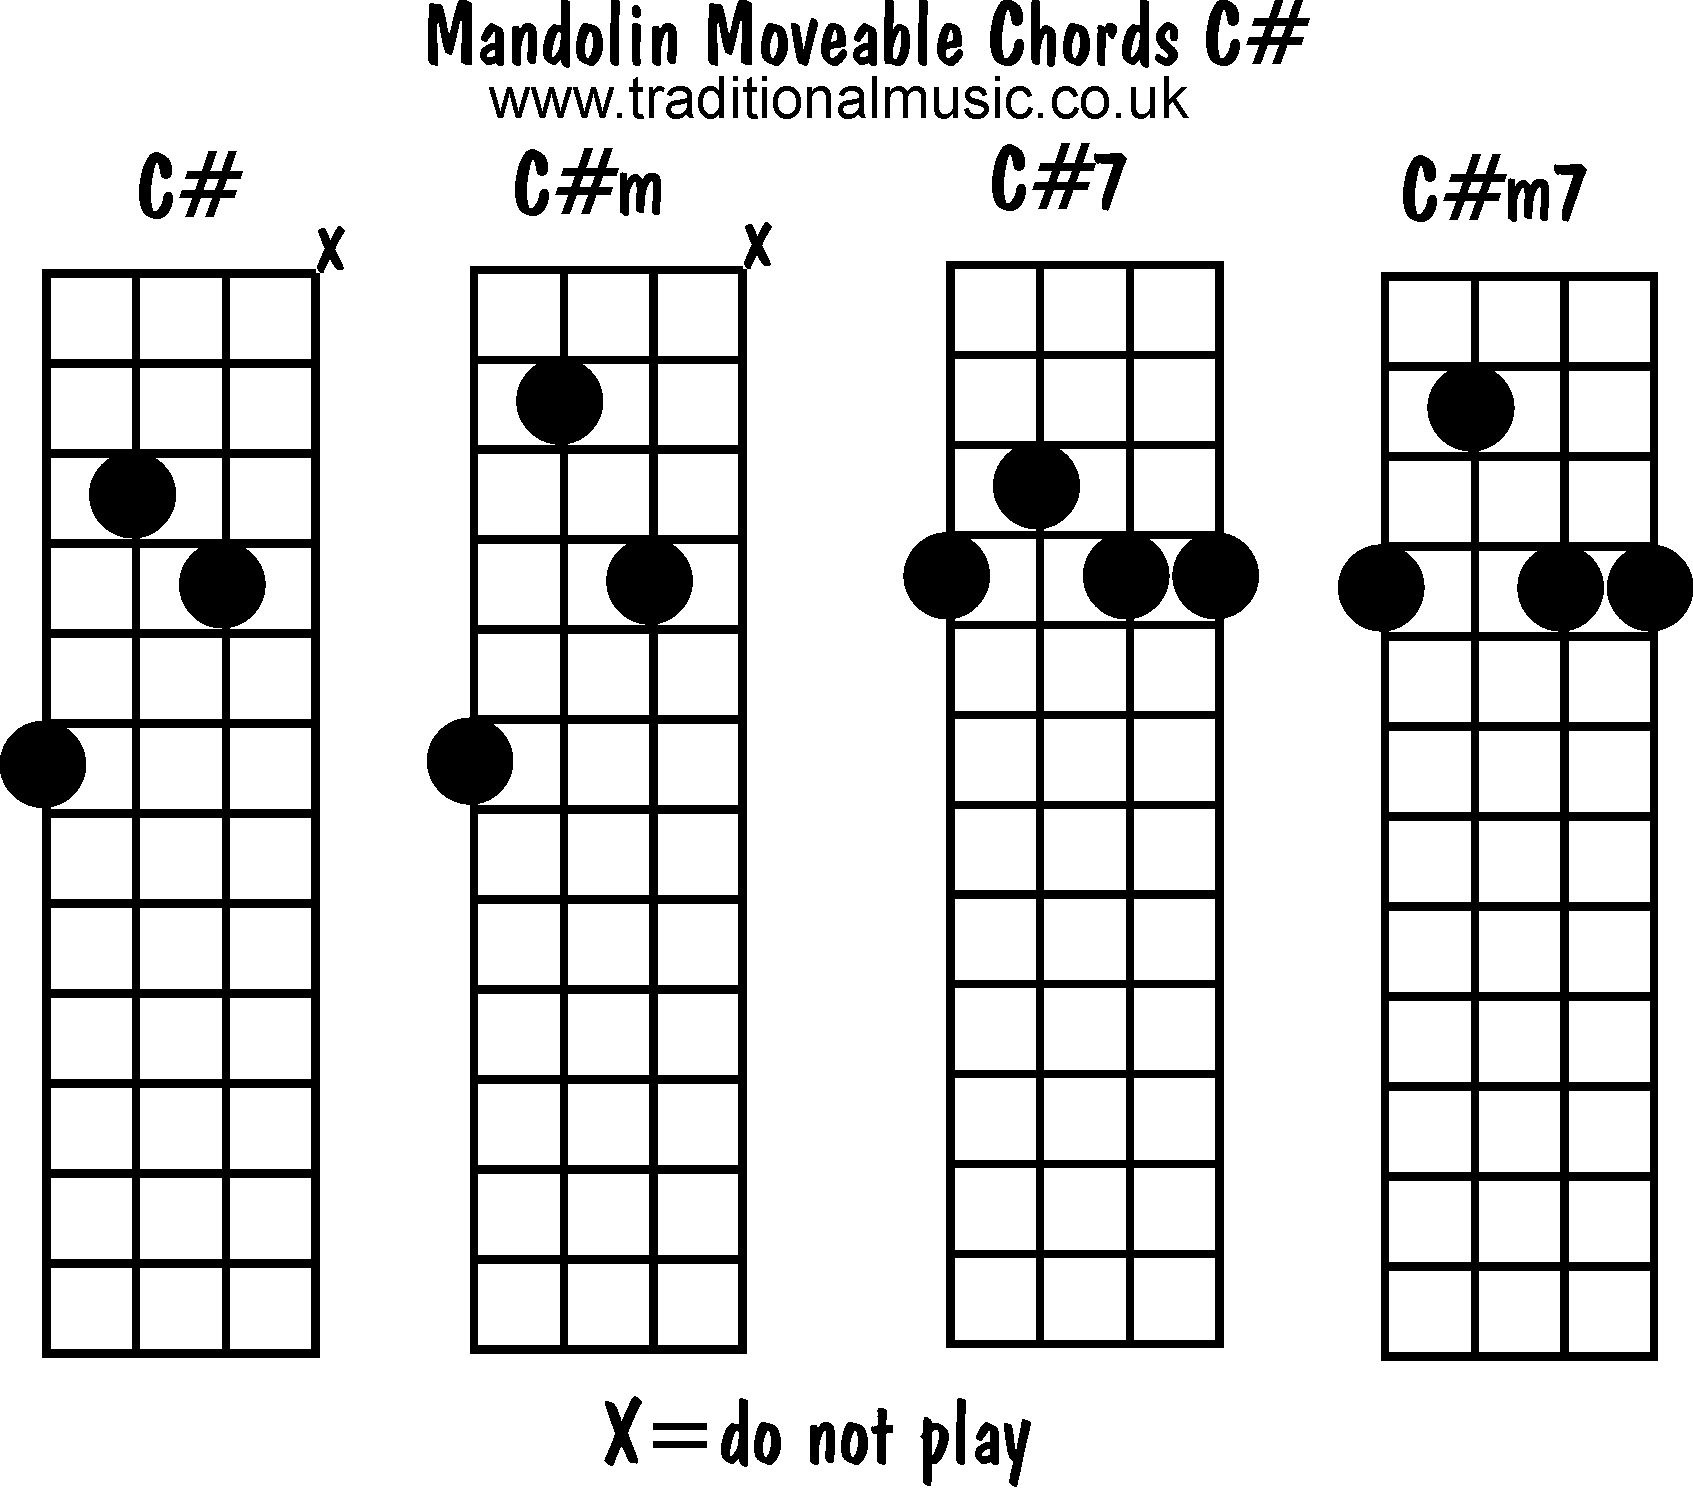 Mandolin chords moveable - C#, C#m, C#7, C#m7